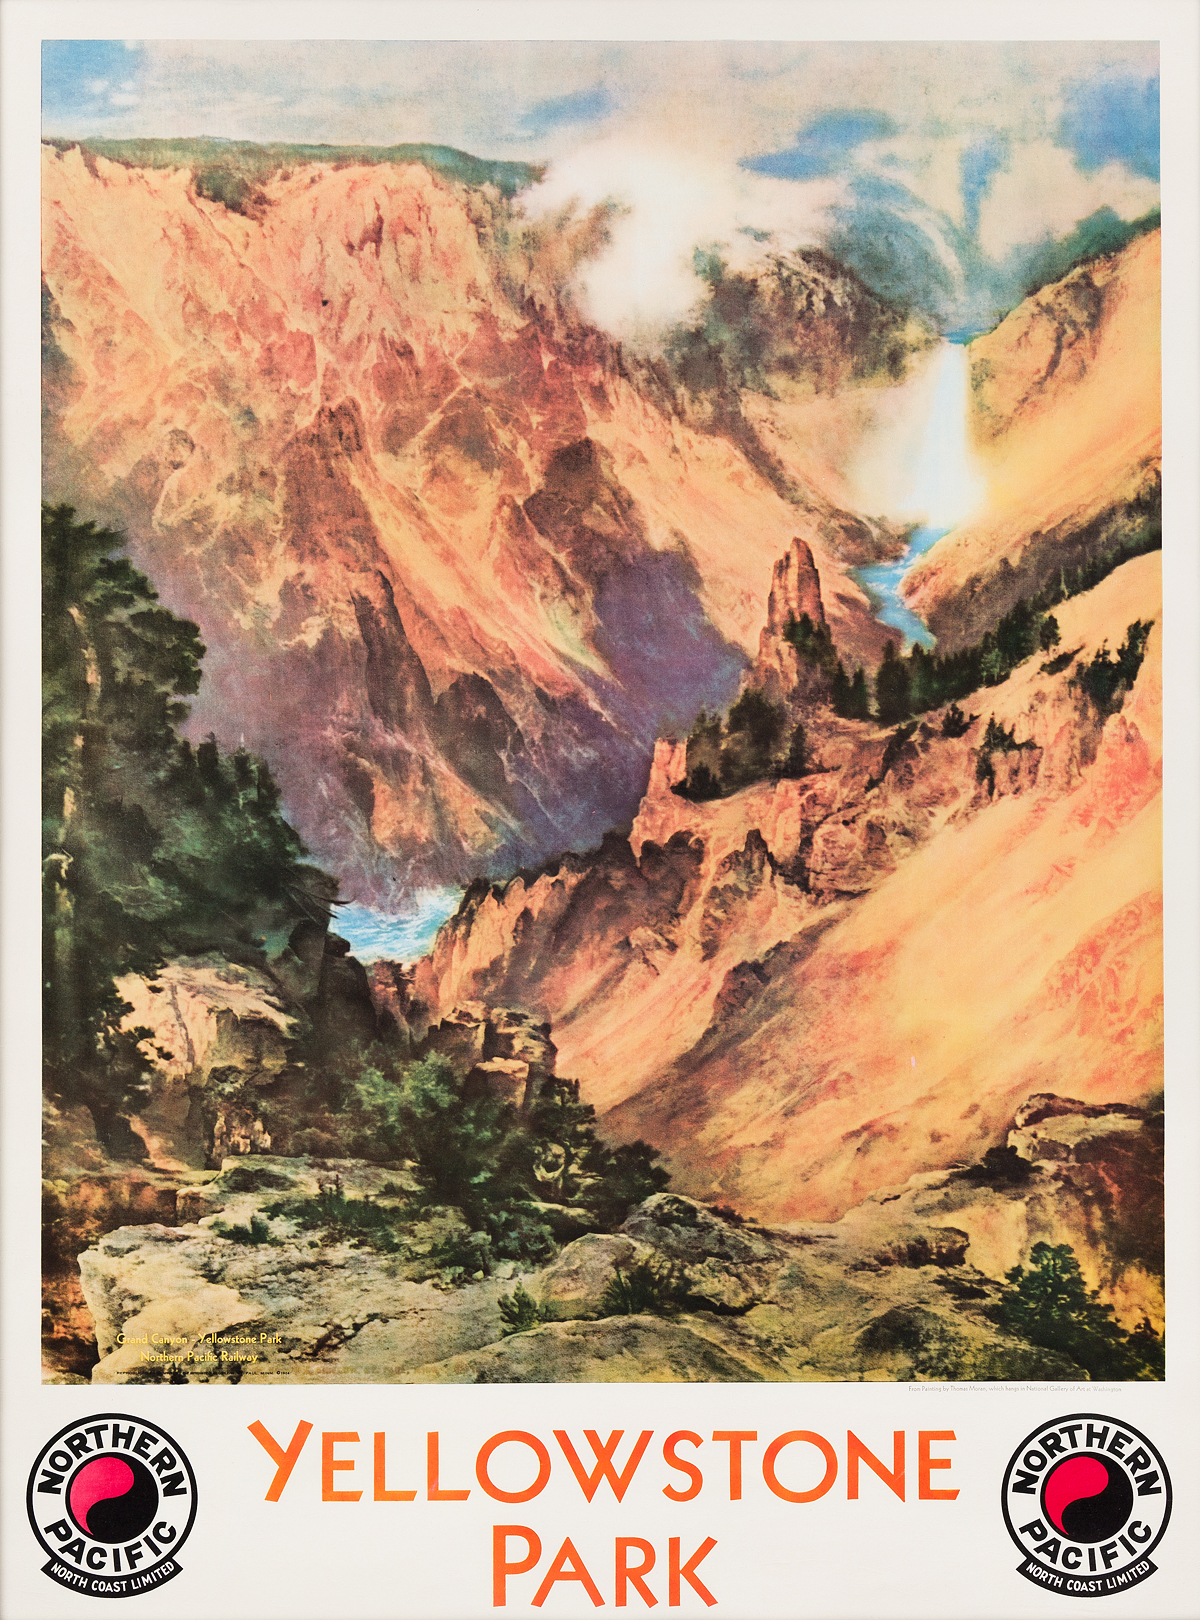 DAPRÈS THOMAS MORAN (1837-1926). YELLOWSTONE PARK / NORTHERN PACIFIC. 1924. 38x28 inches, 98x73 cm. Brown & Bigelow, St. Paul.